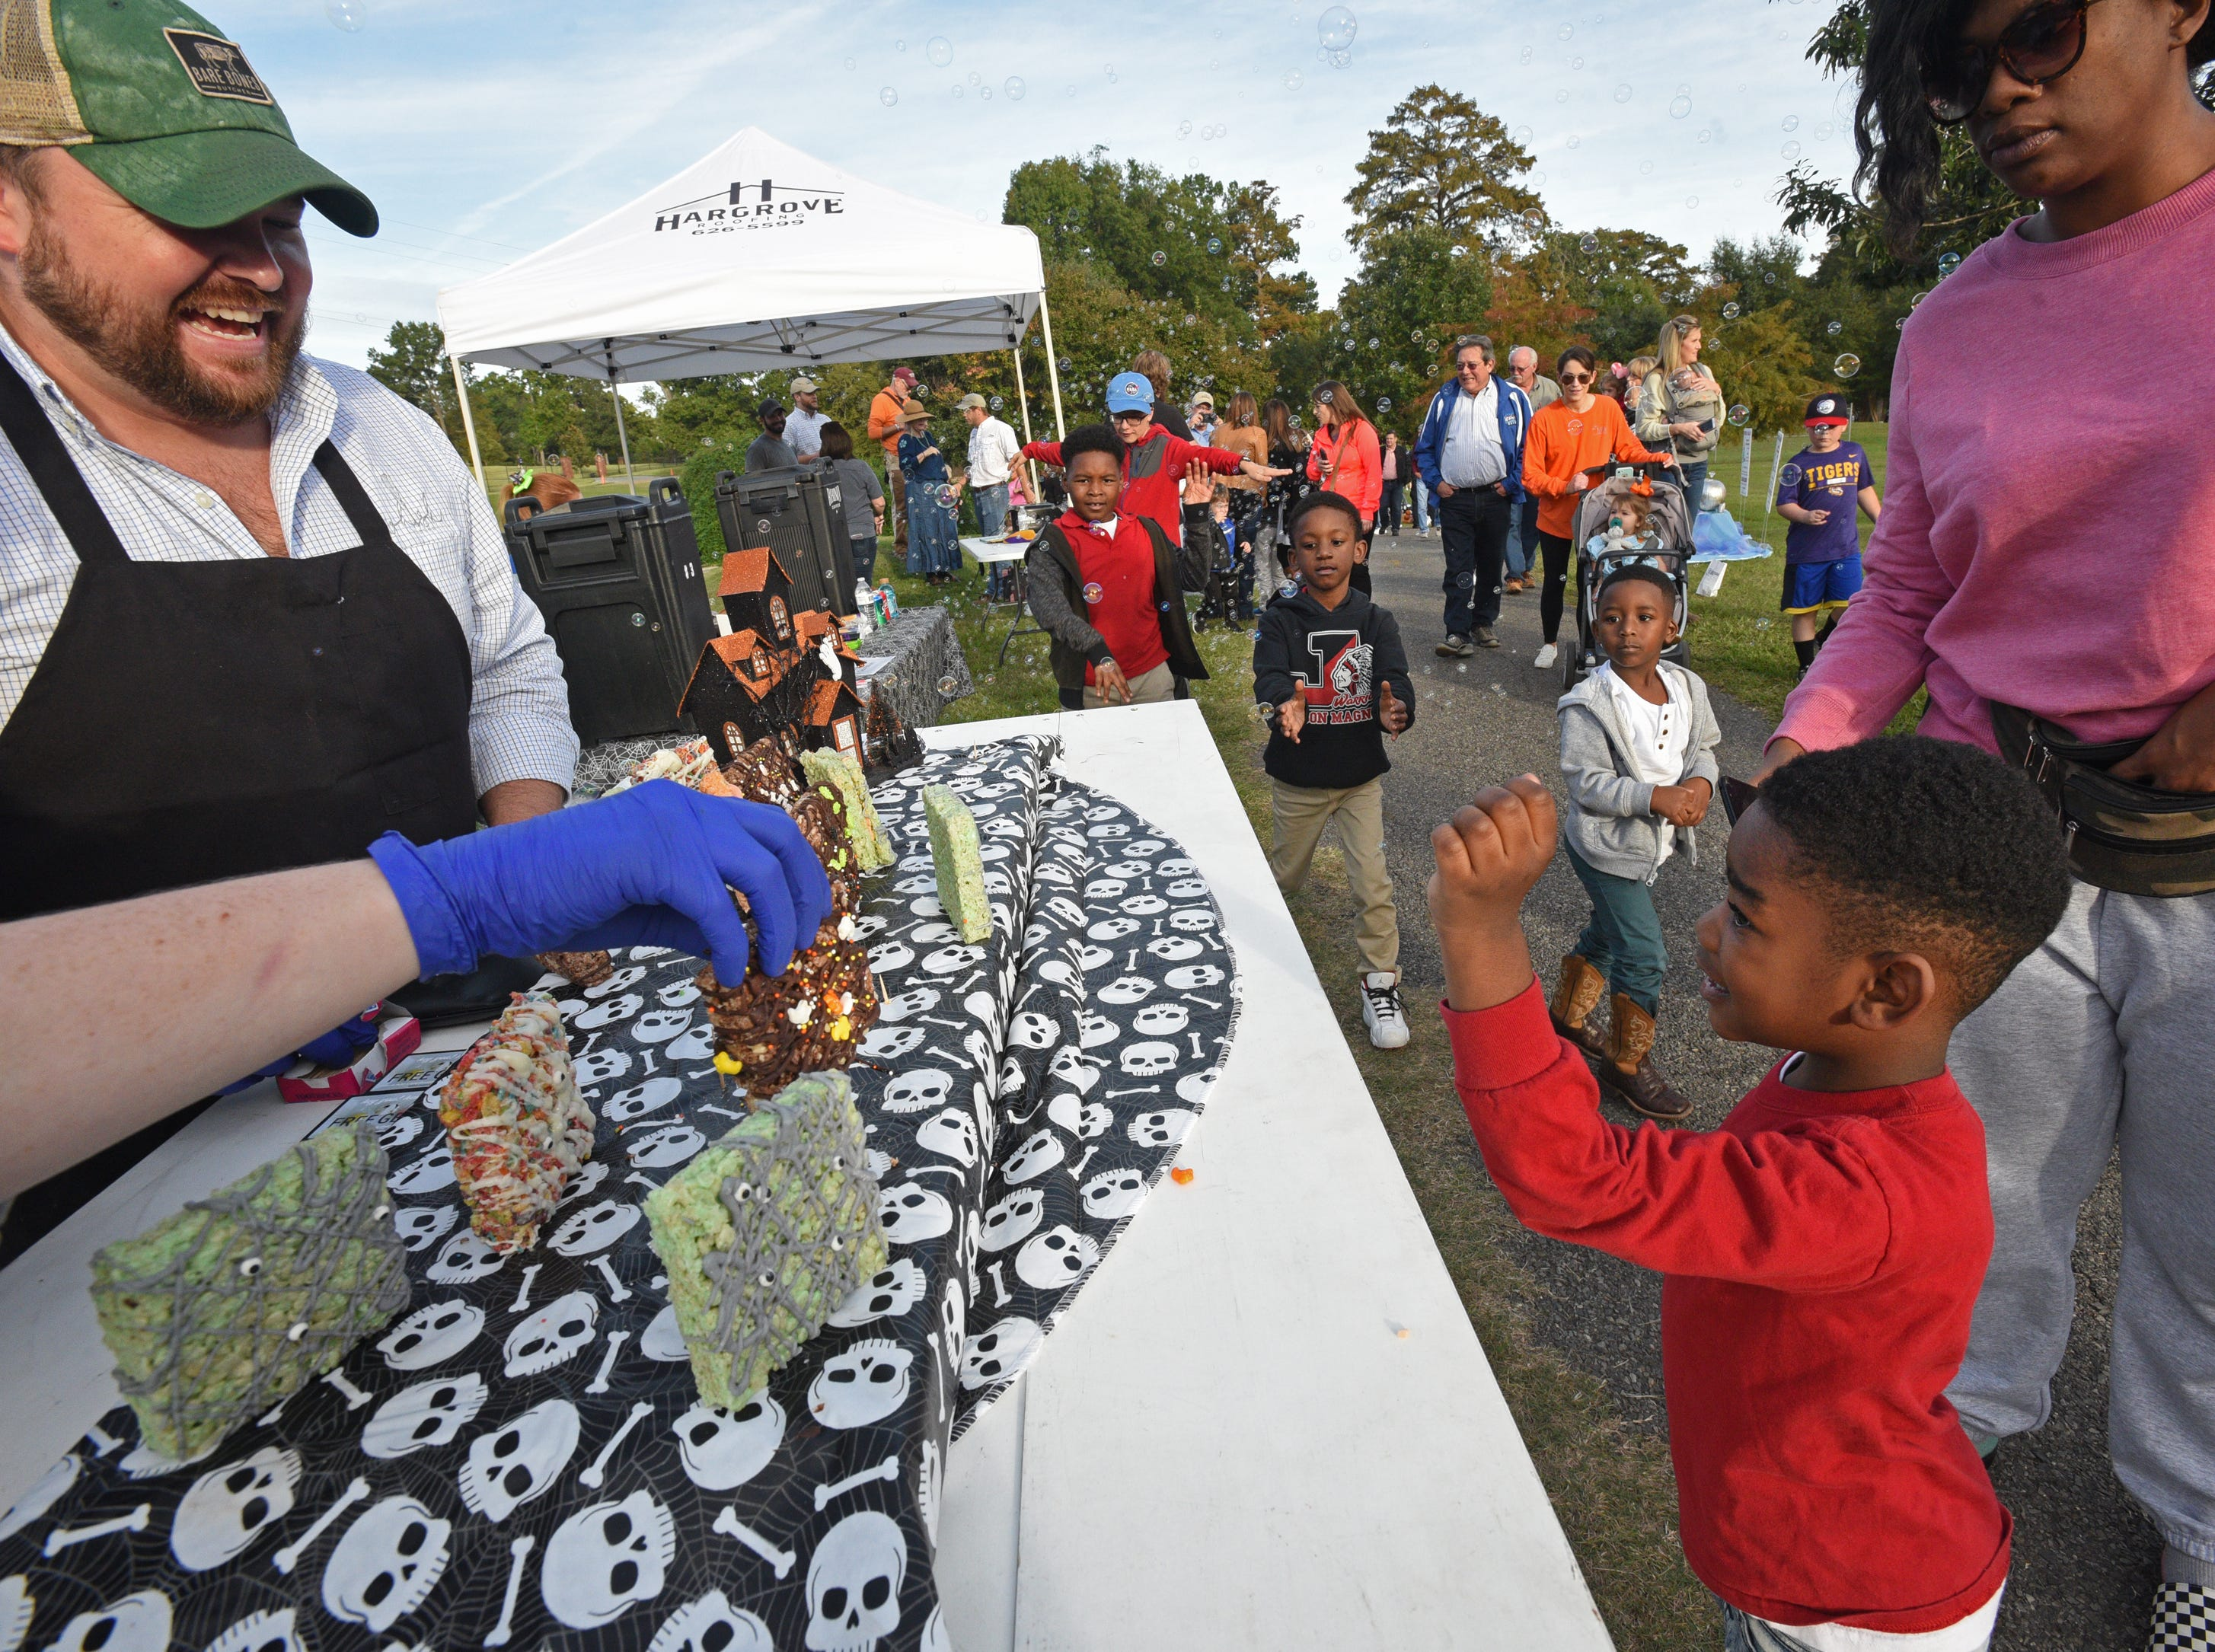 The 26th Annual Pumpkin Shine on Line at Betty Virginia Park.